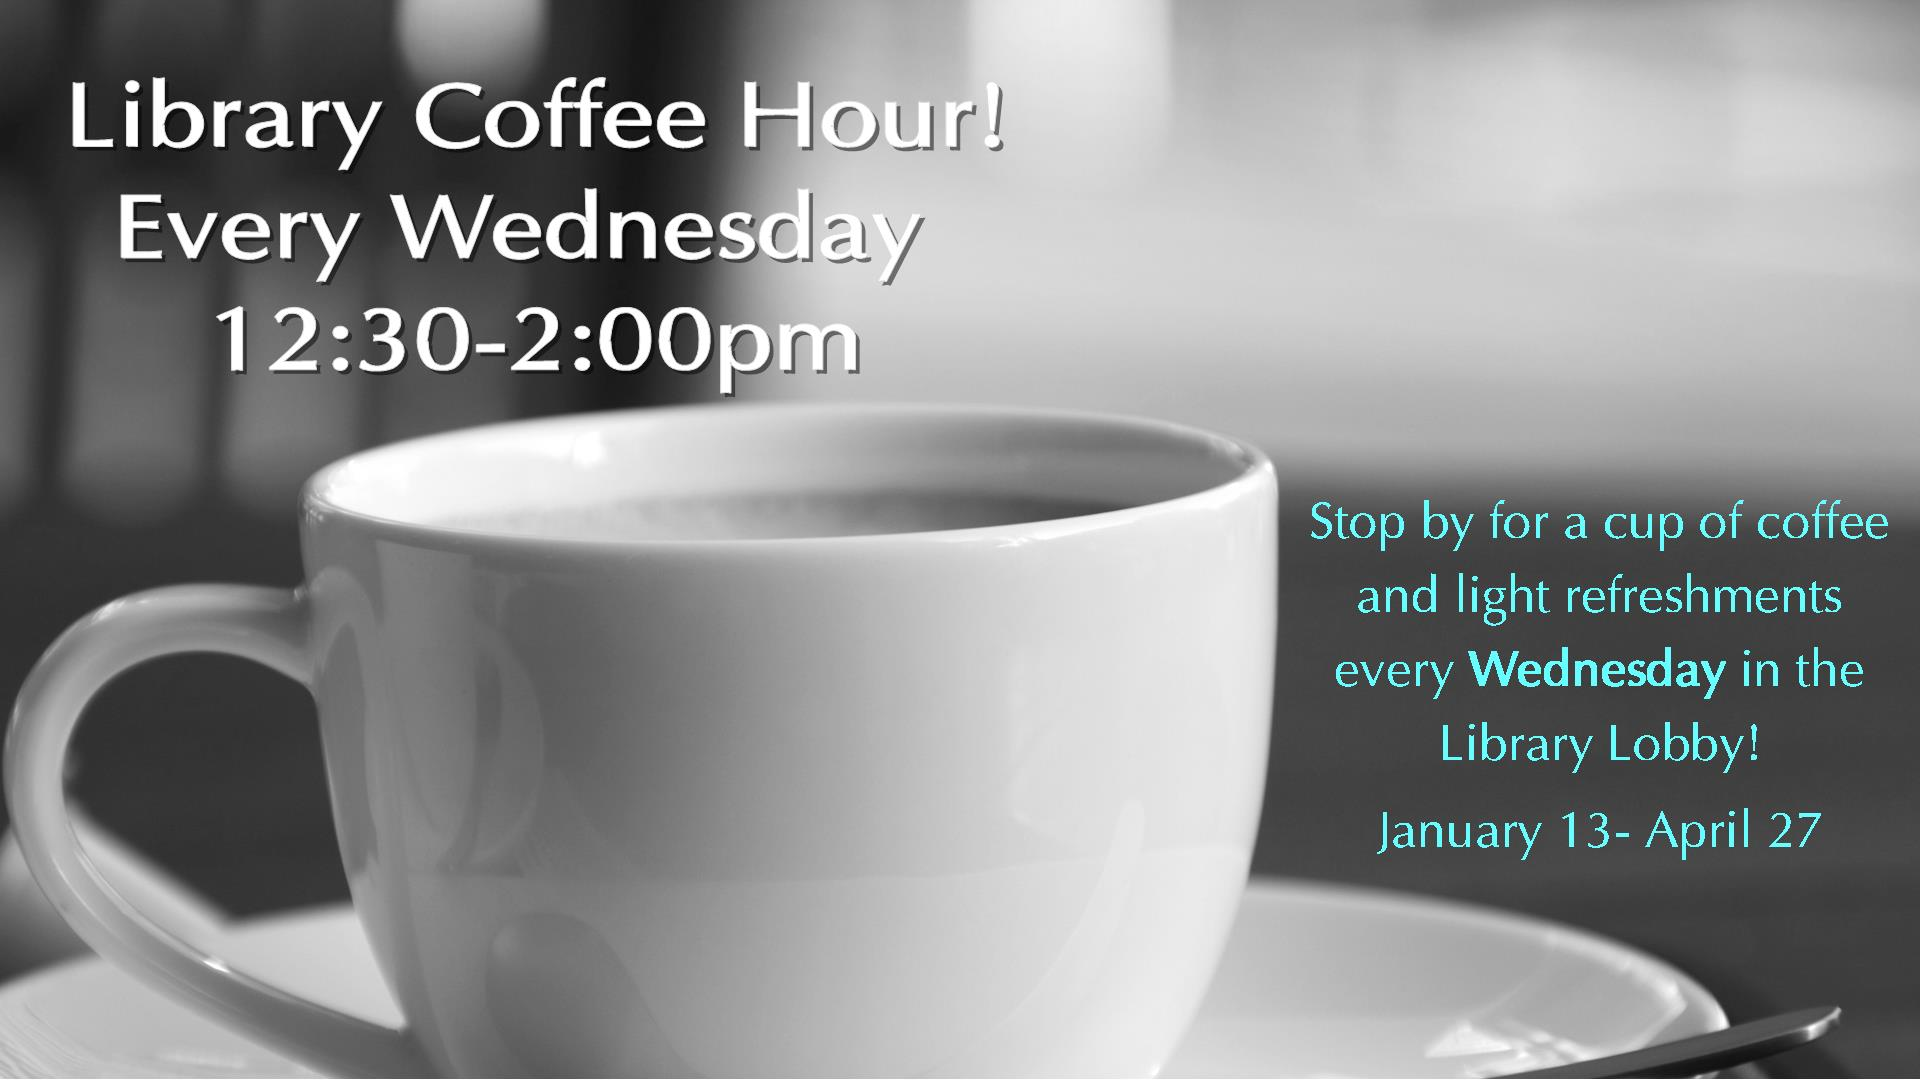 Spring 2016 Coffee Hour Digital Signage